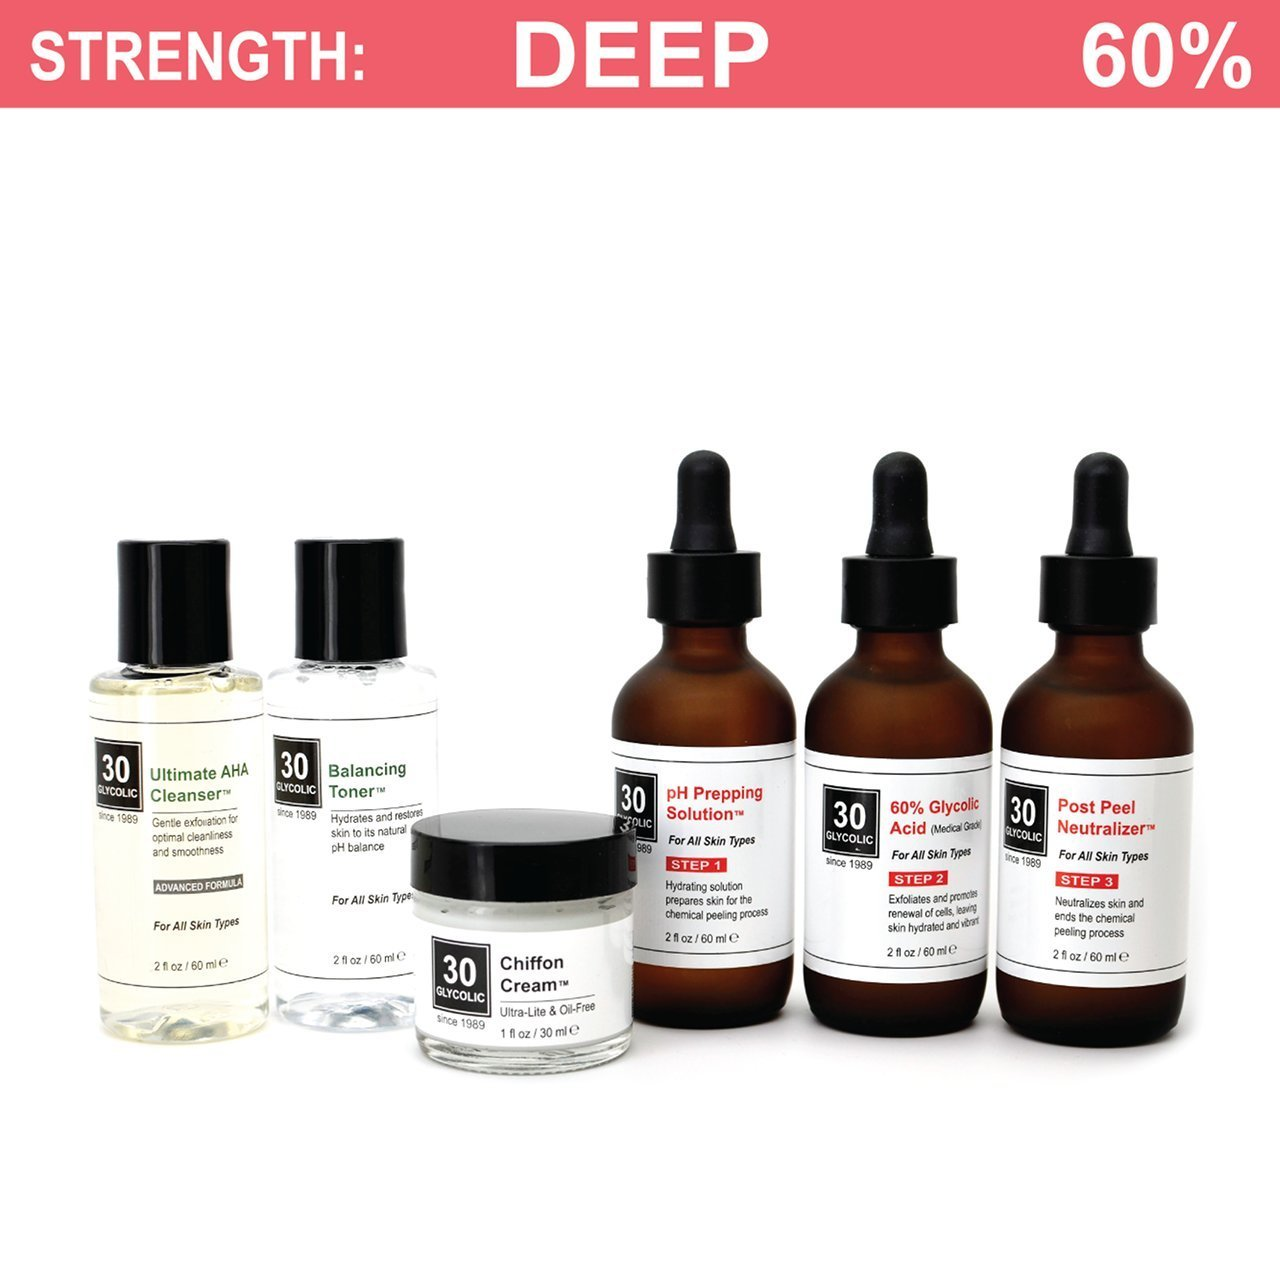 60% Glycolic Peel System for Acne/Oily/Combo Skin - FREE $45 Cleanser/Toner/Cream INCLUDED